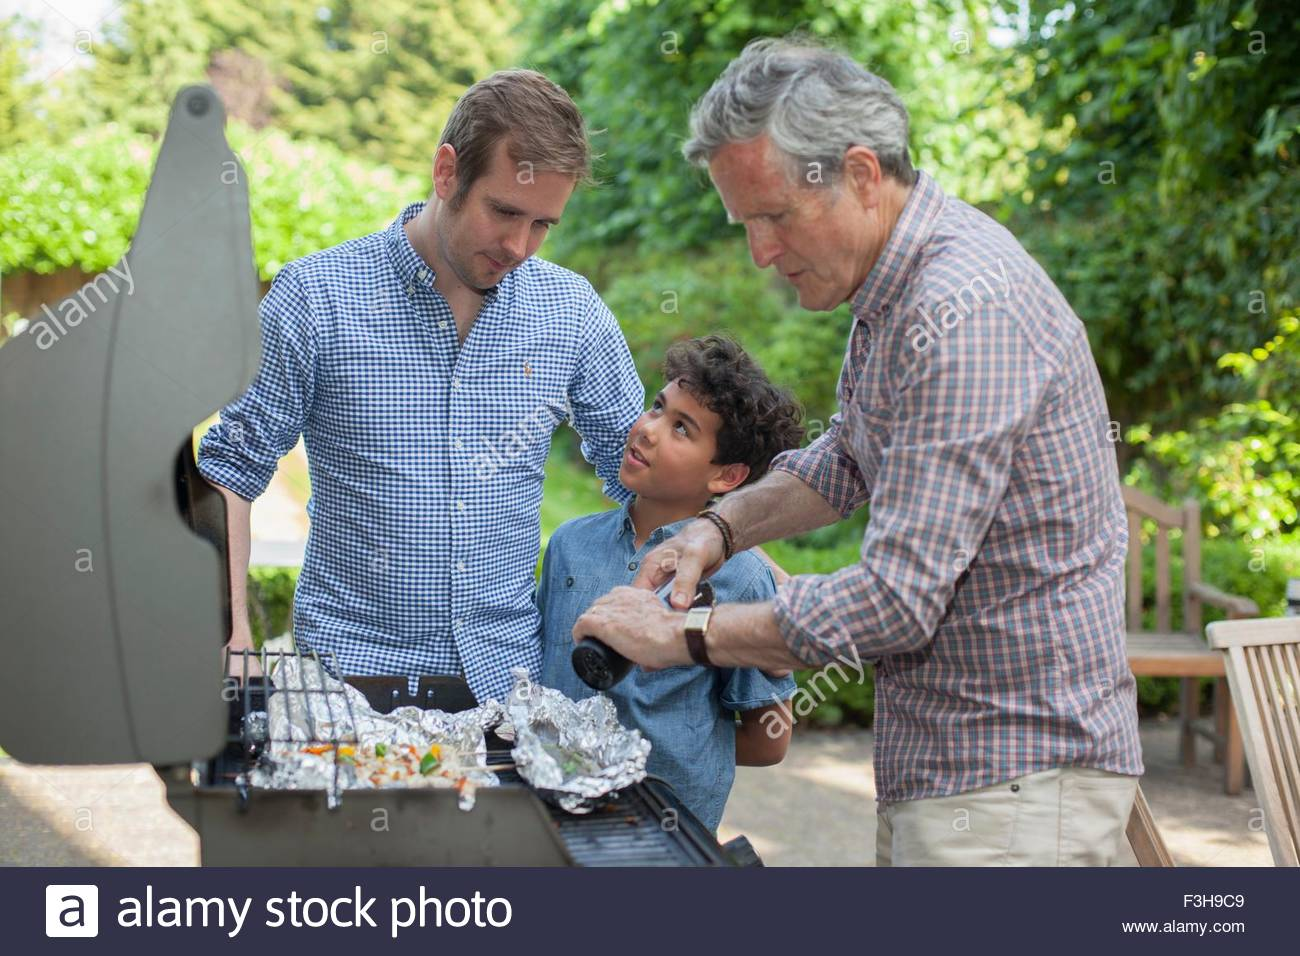 Family la cuisson sur barbecue Photo Stock